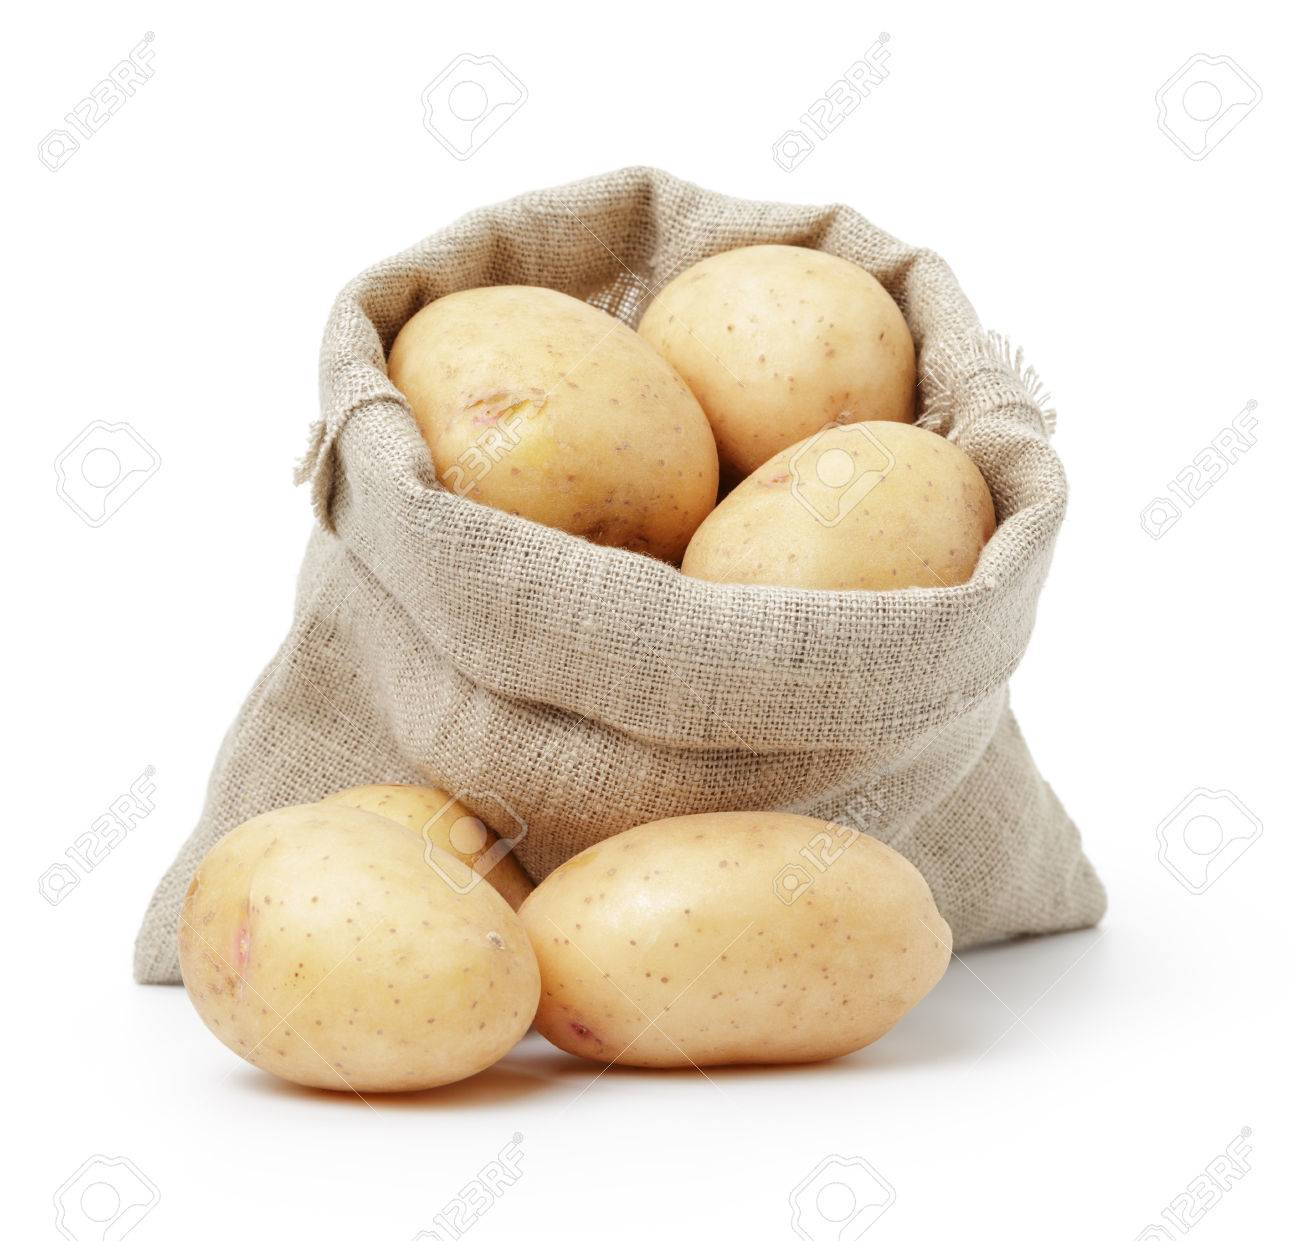 raw fresh potatoes in burlap bag isolated on white - 37252052